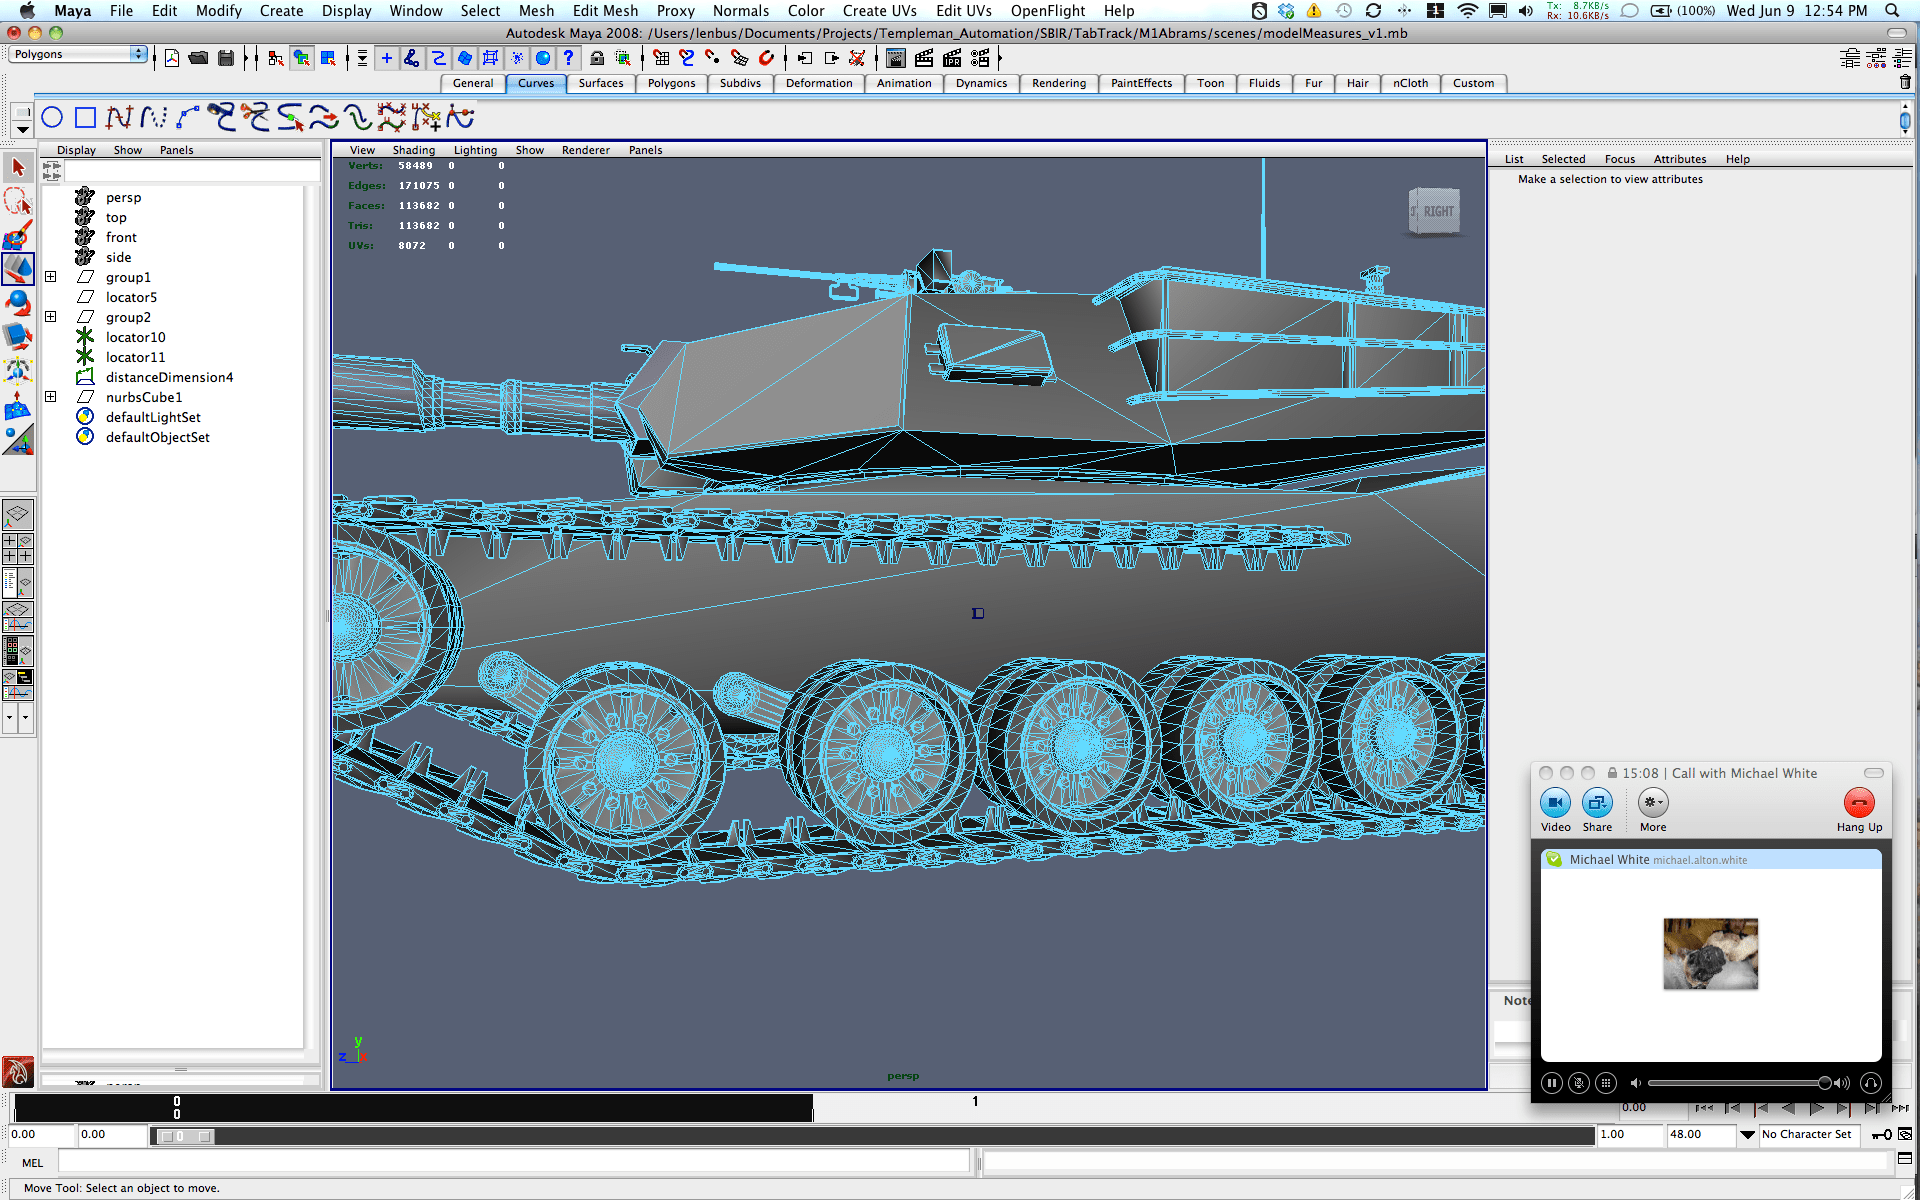 Render of an army tank and how it performs, has teal lines, outlining its curvature.